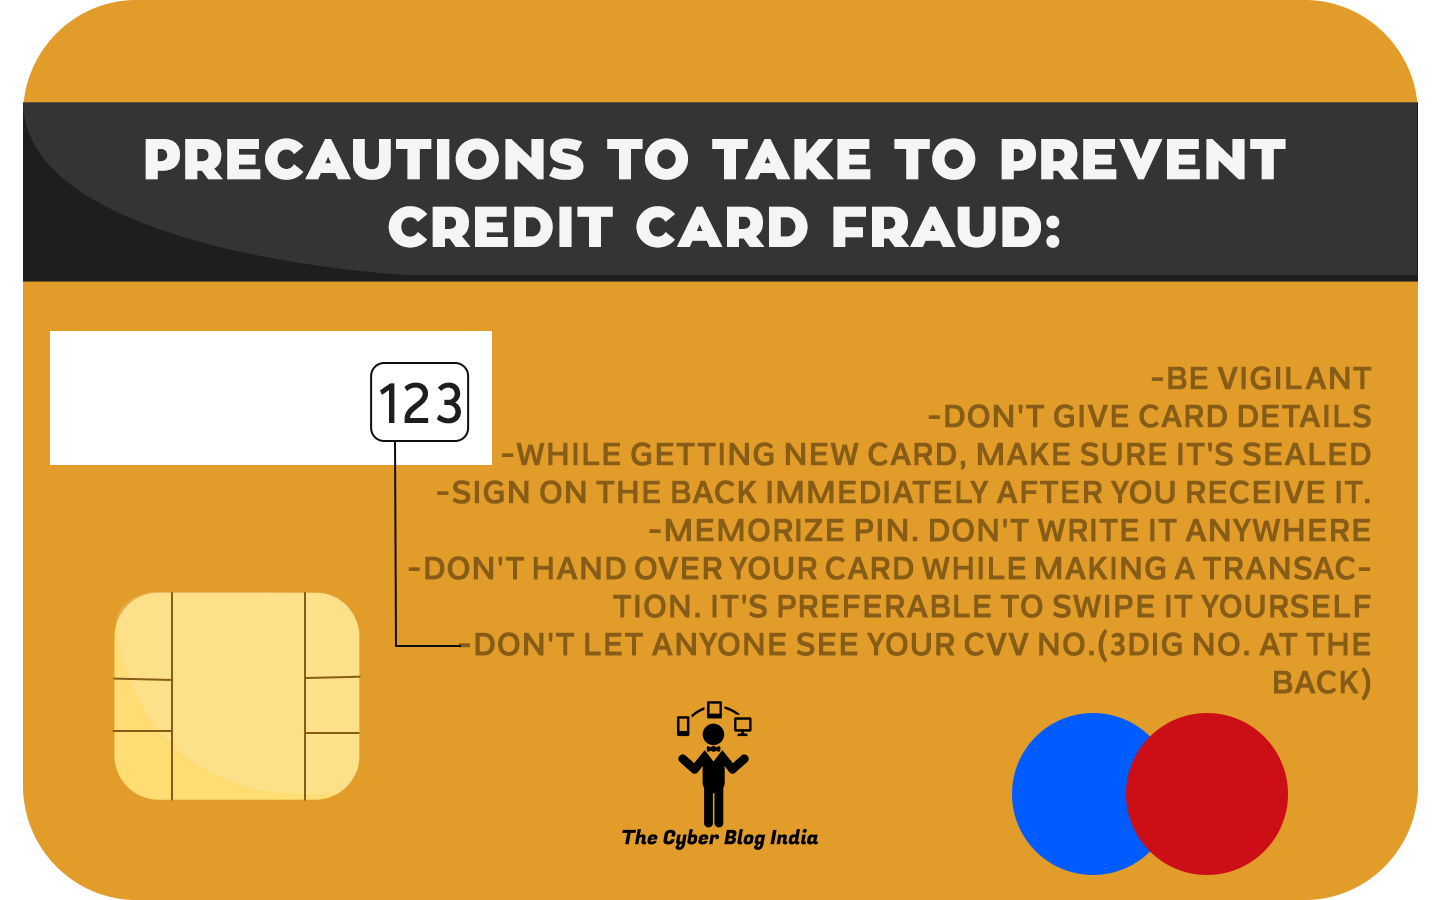 All You Need To Know About Credit Card Fraud - The Cyber Blog India